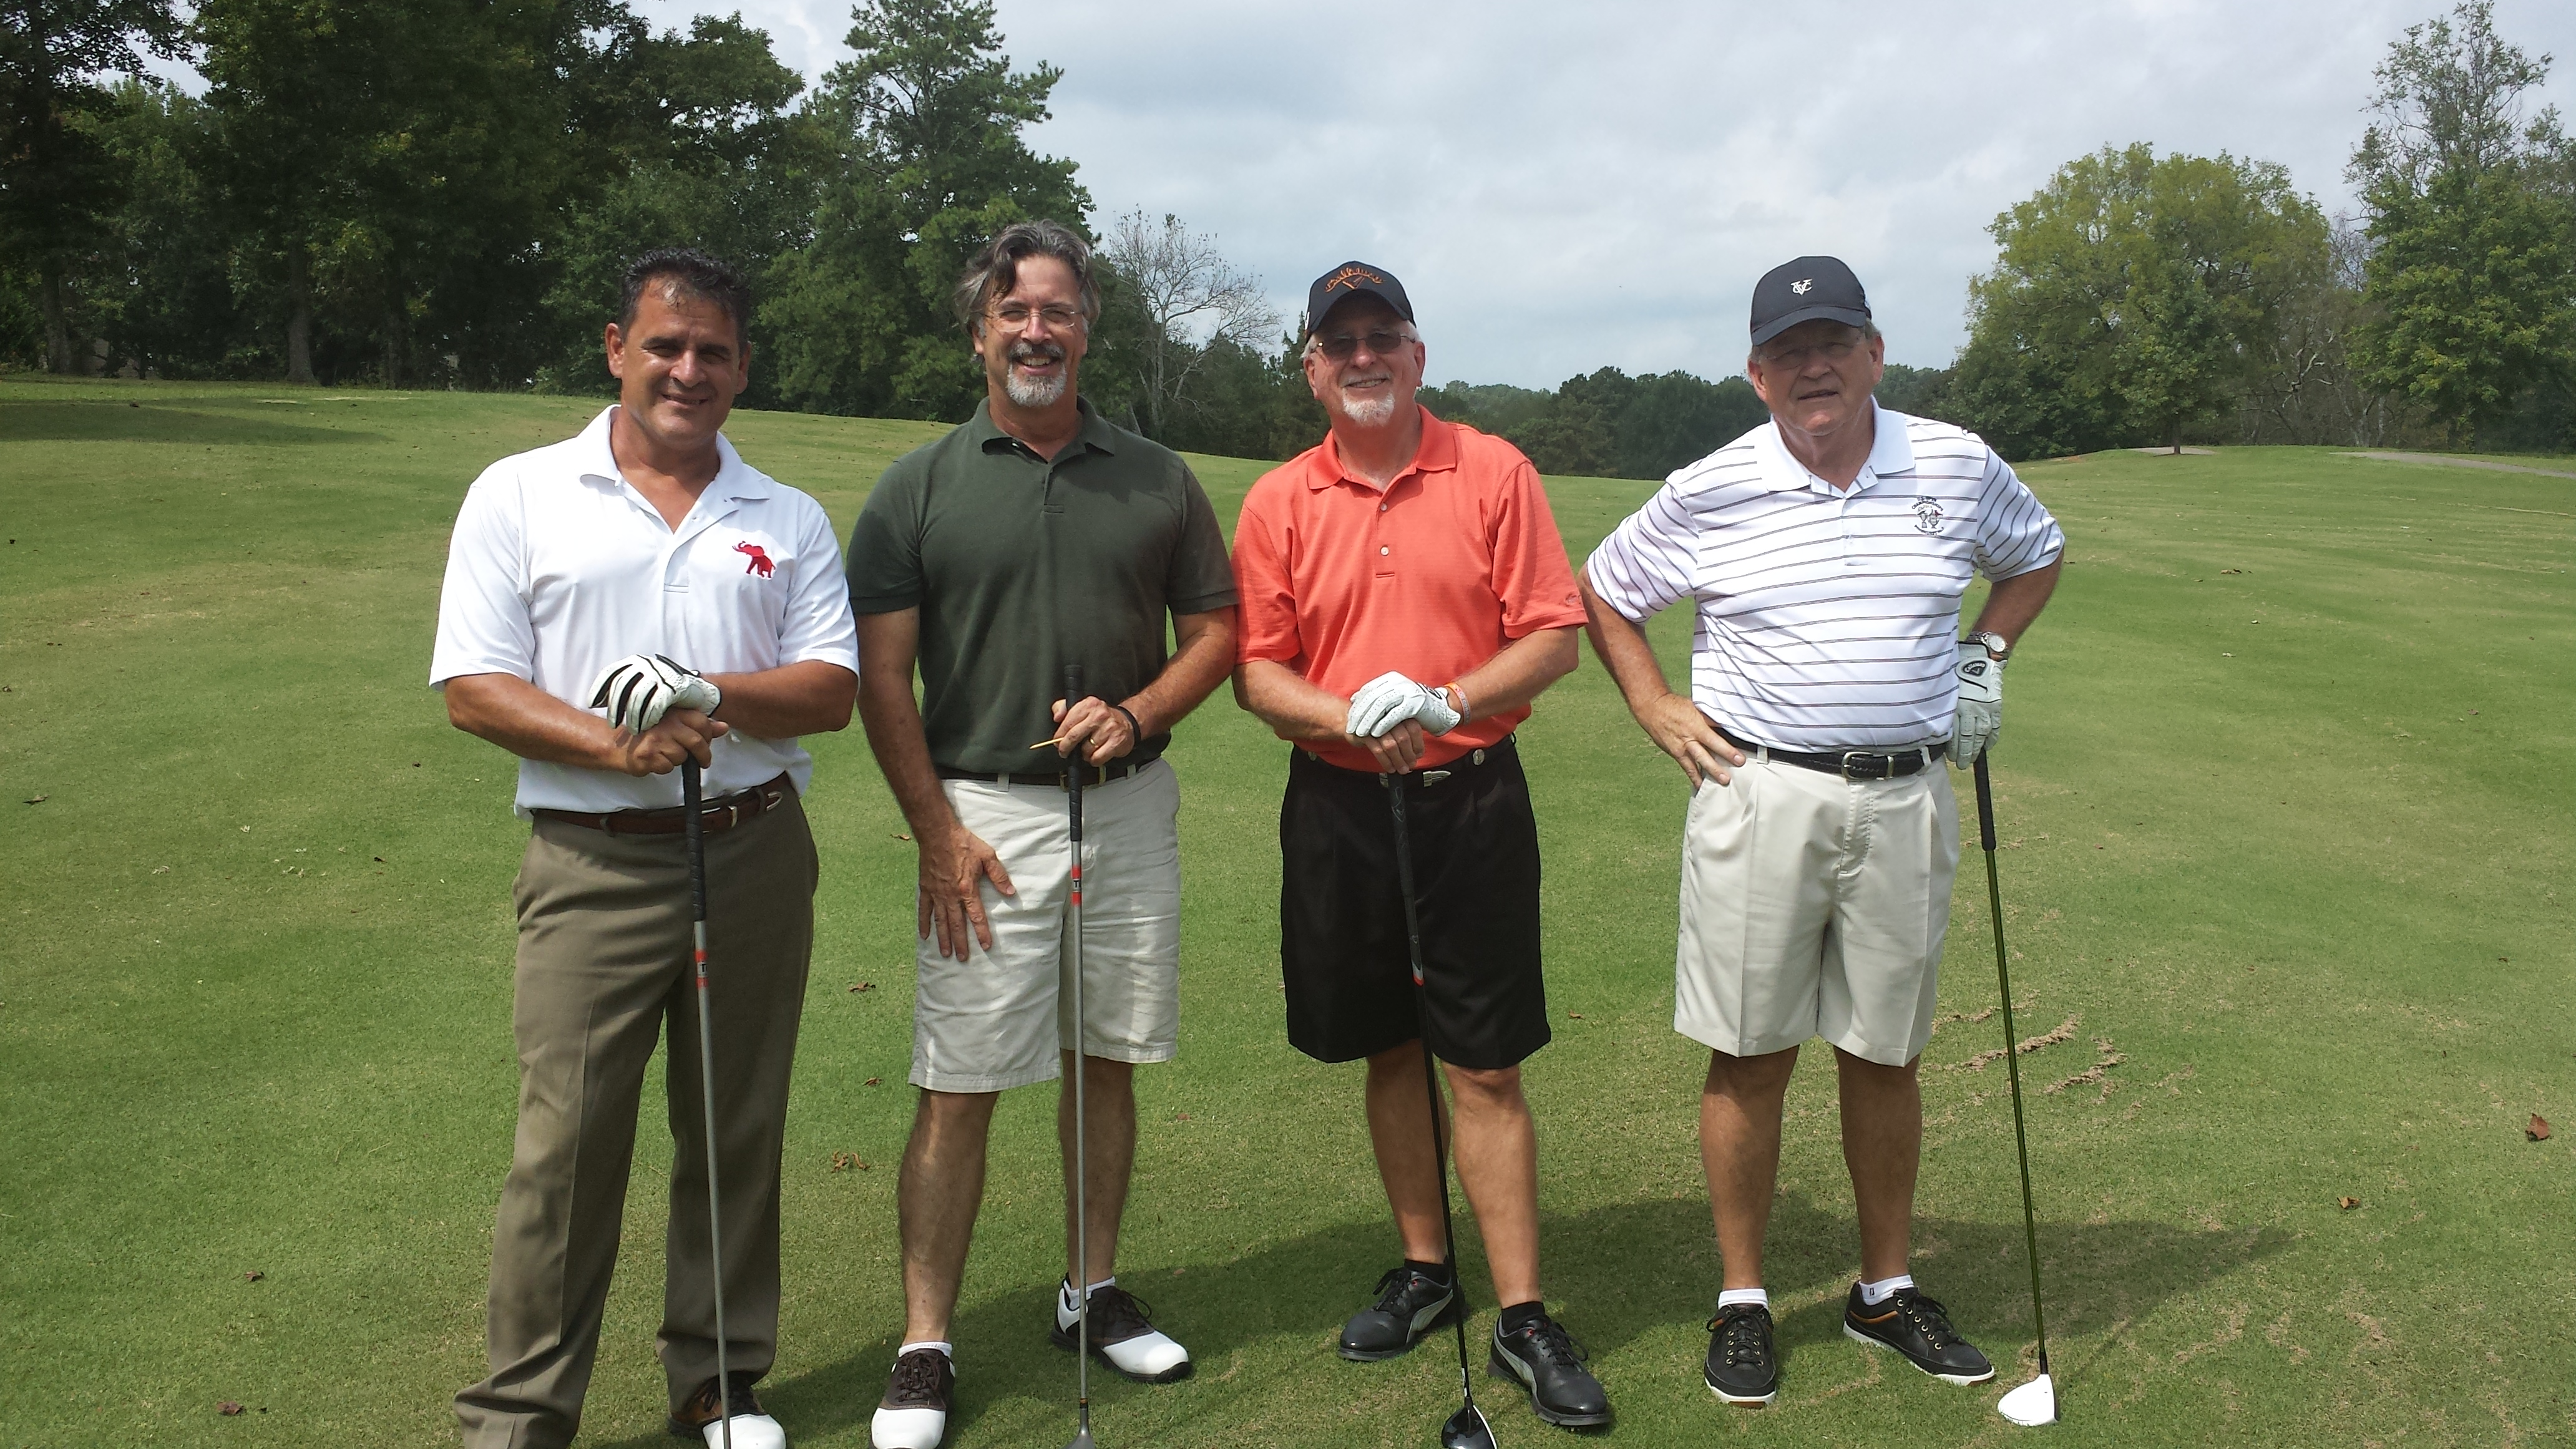 24th annual charity golf tournament to raise scholarship funds